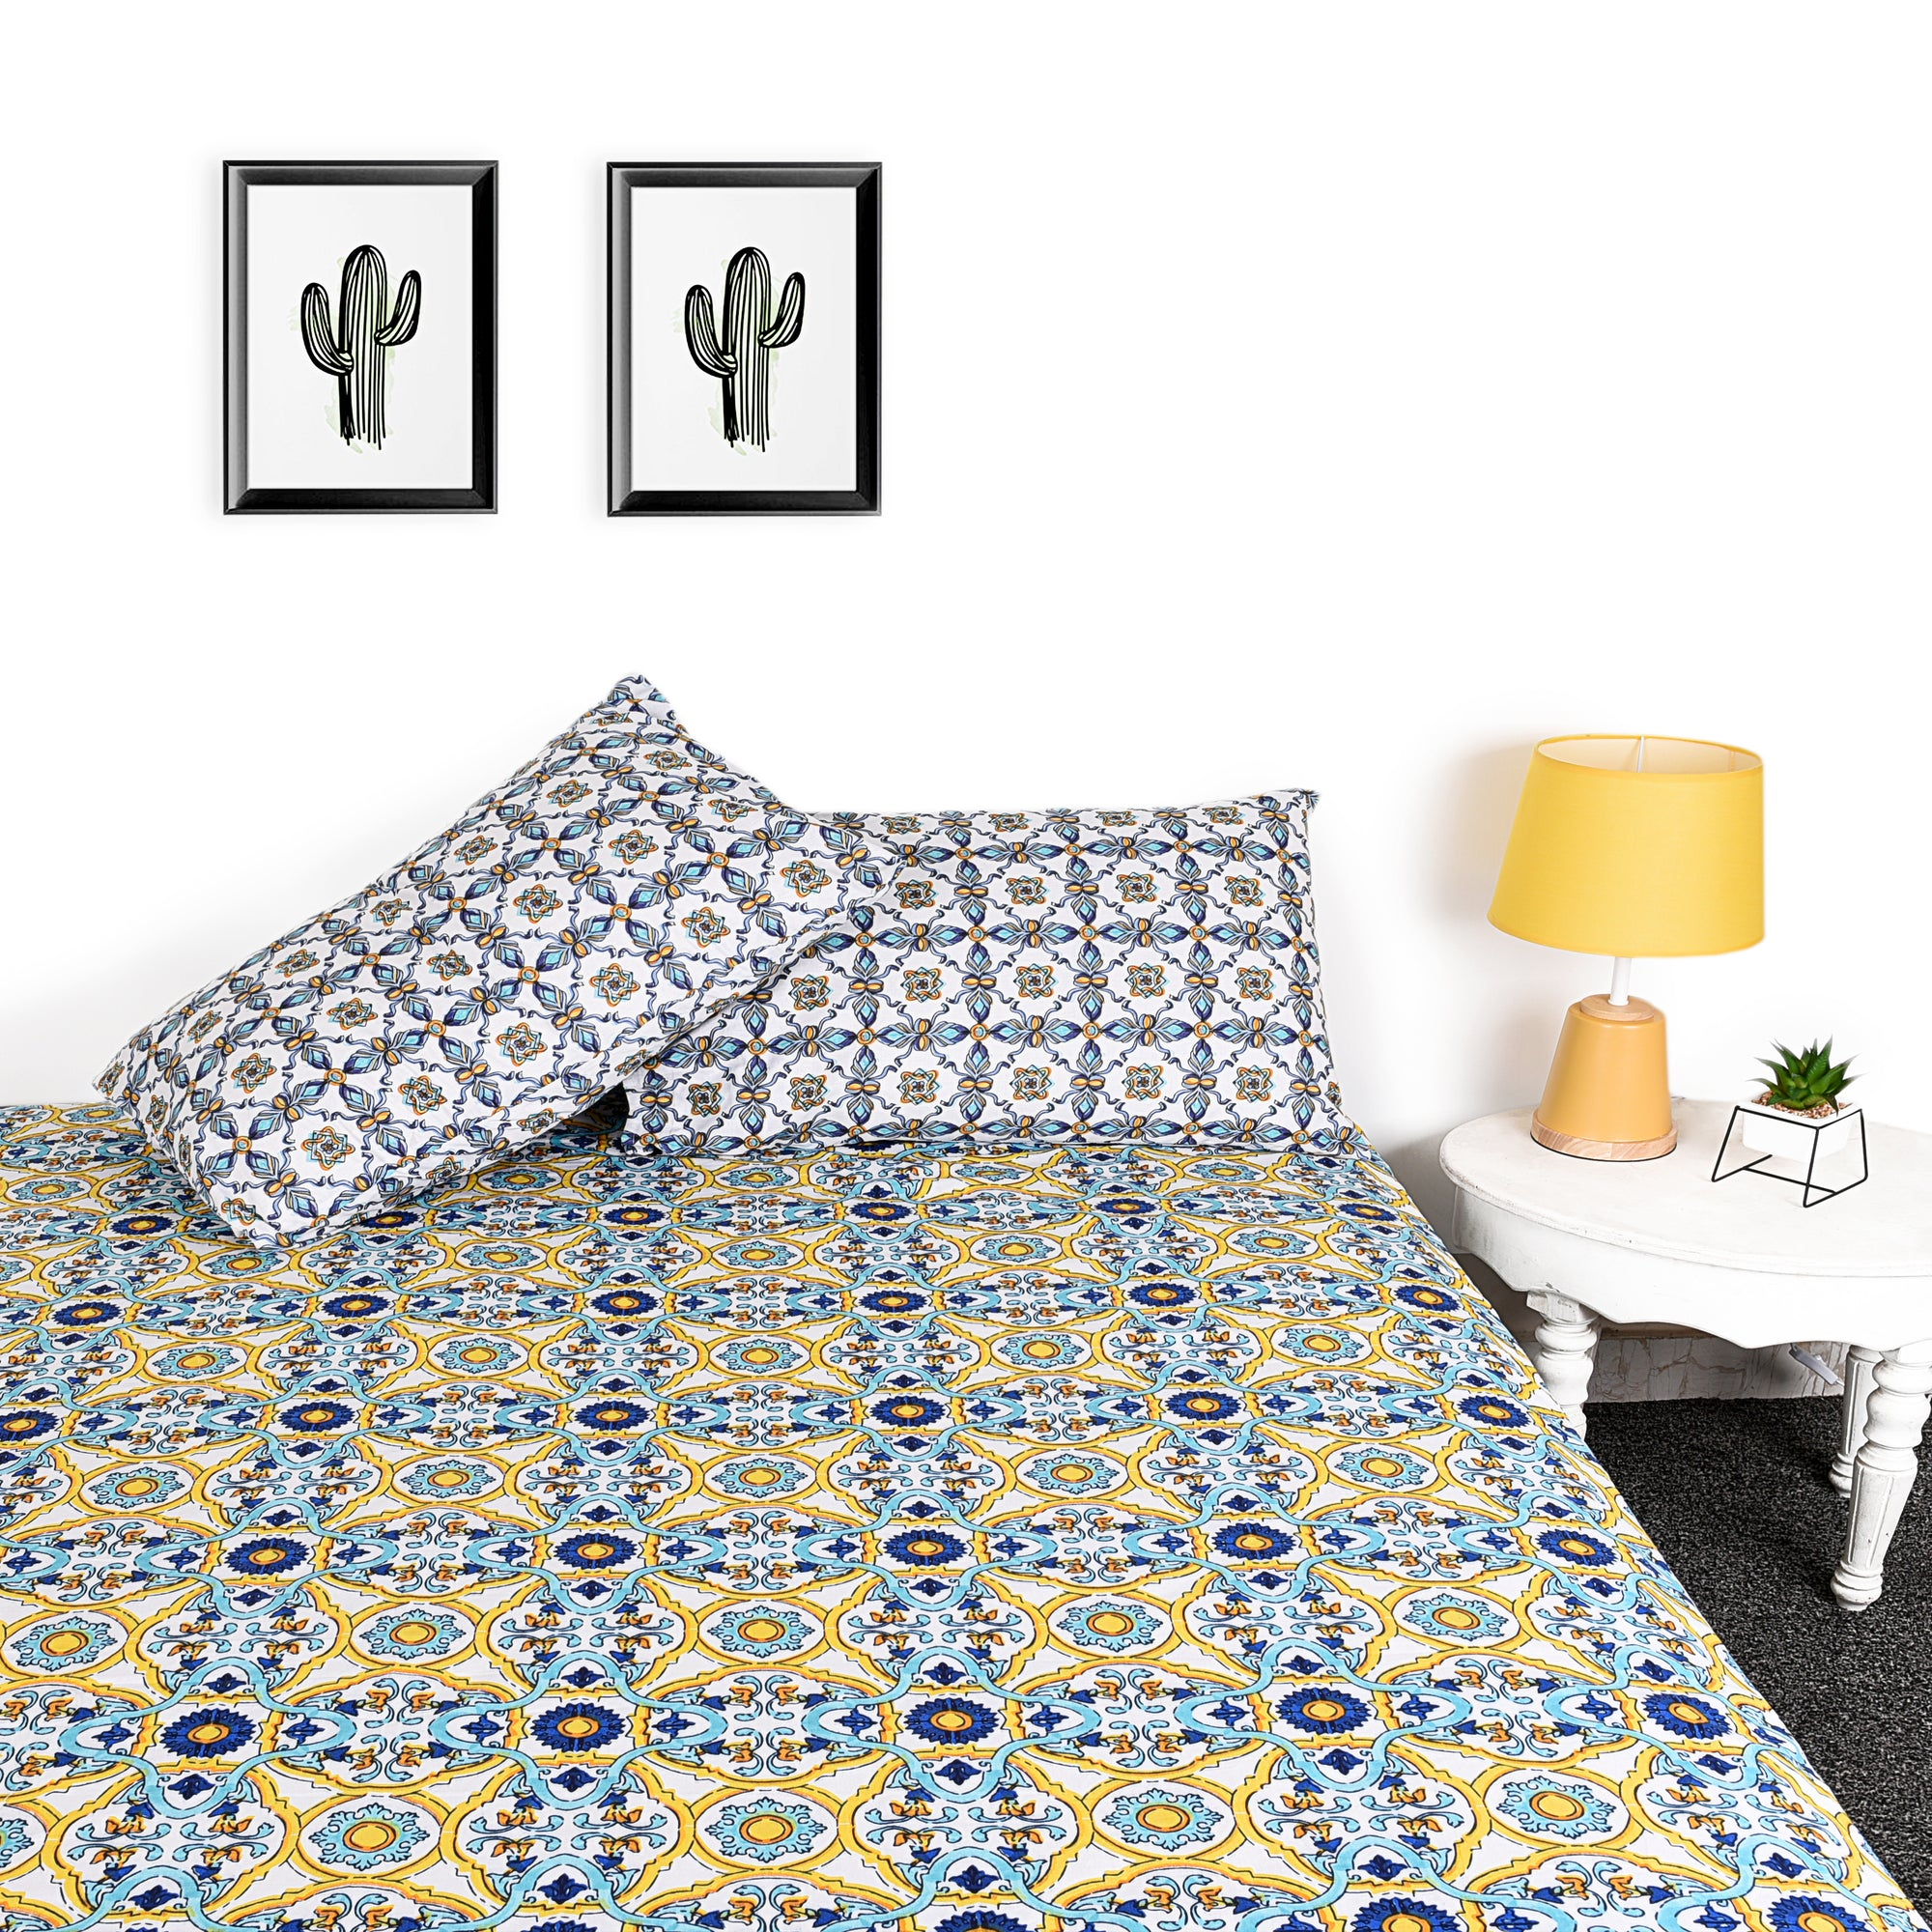 Pattern Design Bed Sheet With Pillows